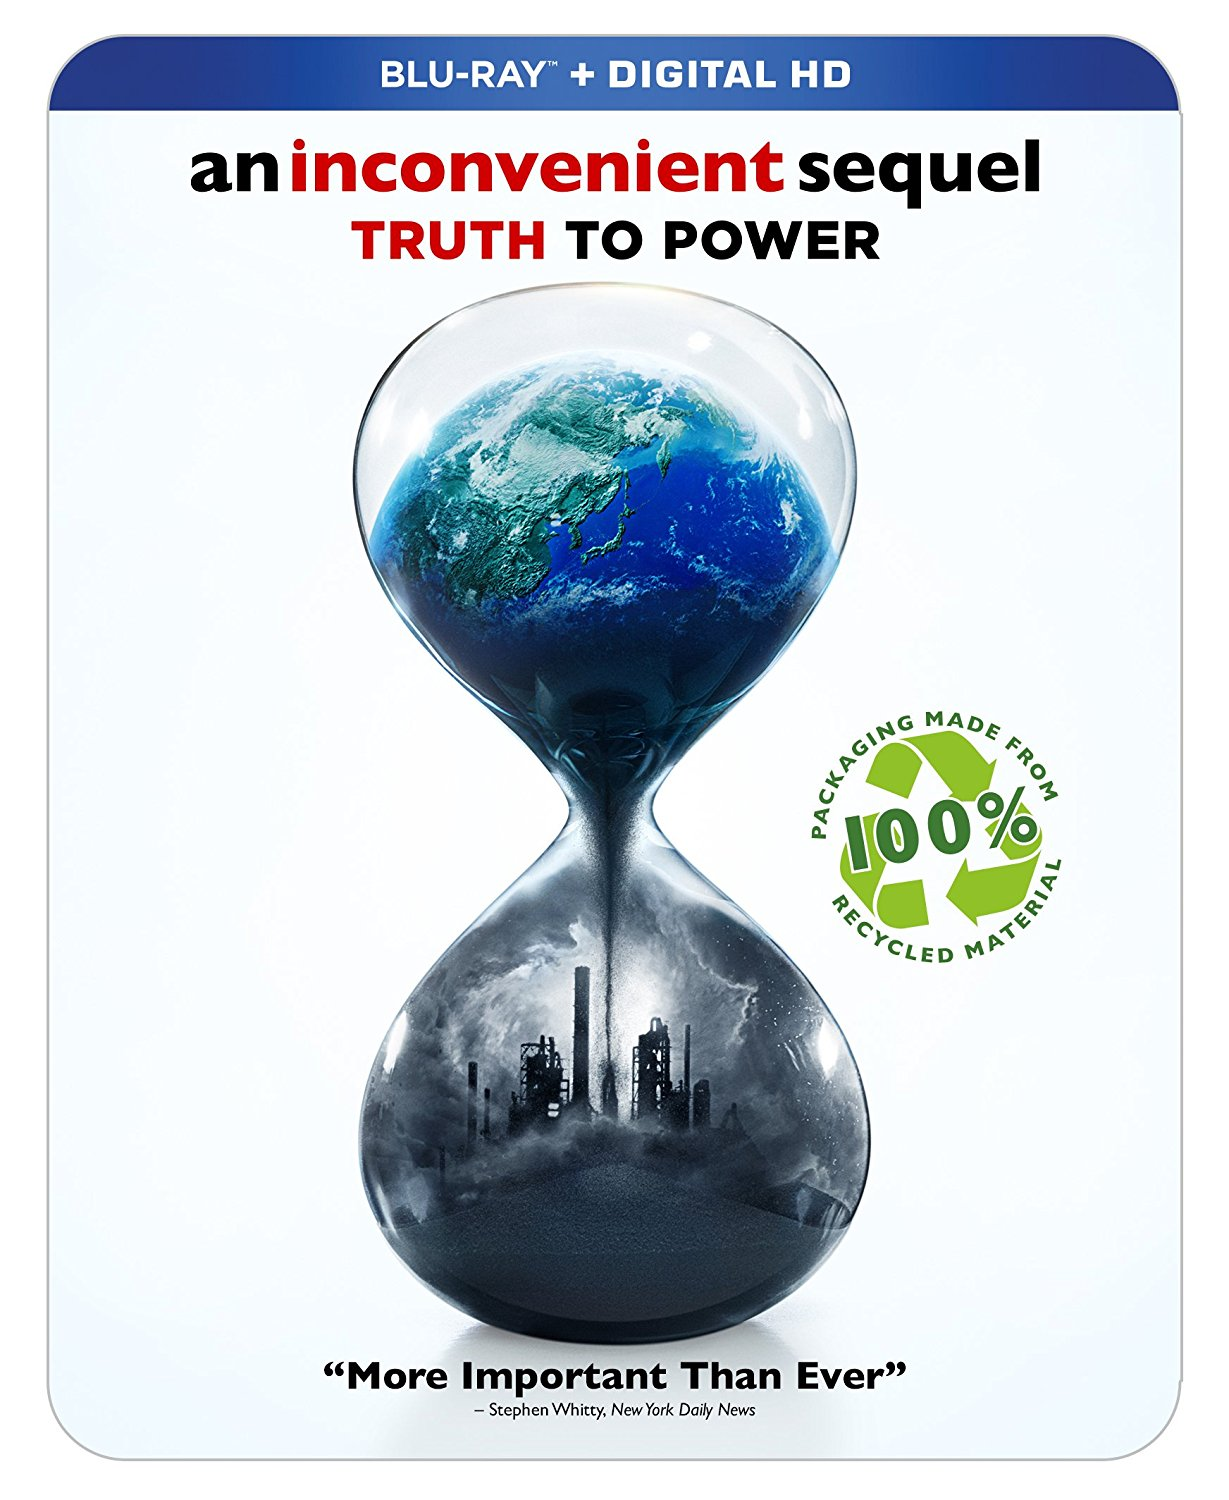 Enter To Win 1 000 Gift Card From Blu Dot: Win A An Inconvenient Sequel: Truth To Power On Blu-Ray